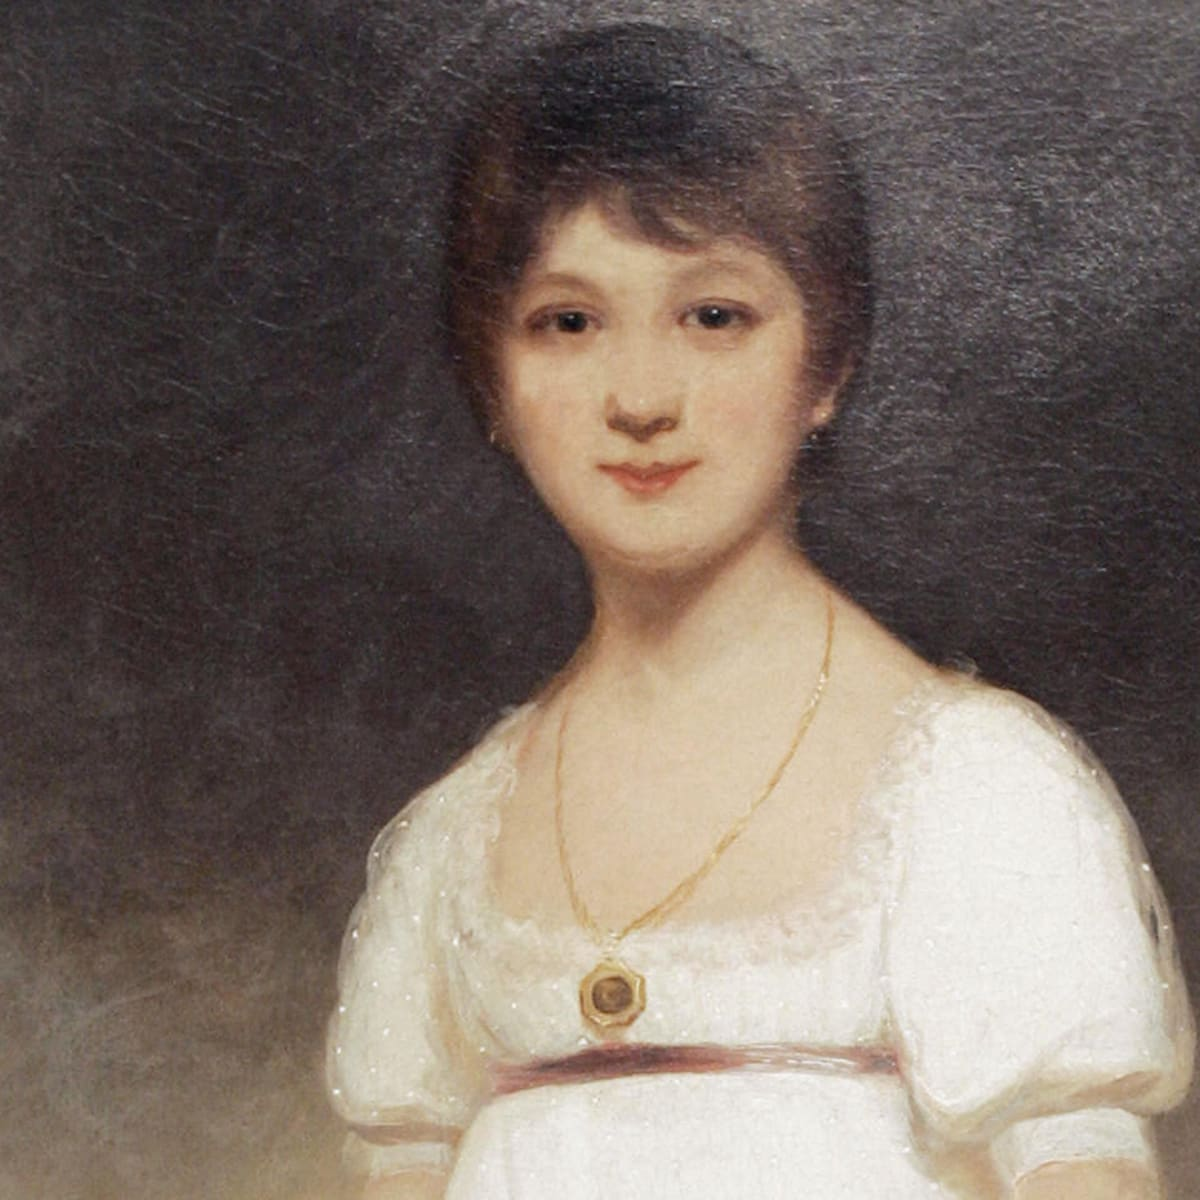 Jane Austen: 6 Interesting Facts About the Beloved English Author -  Biography